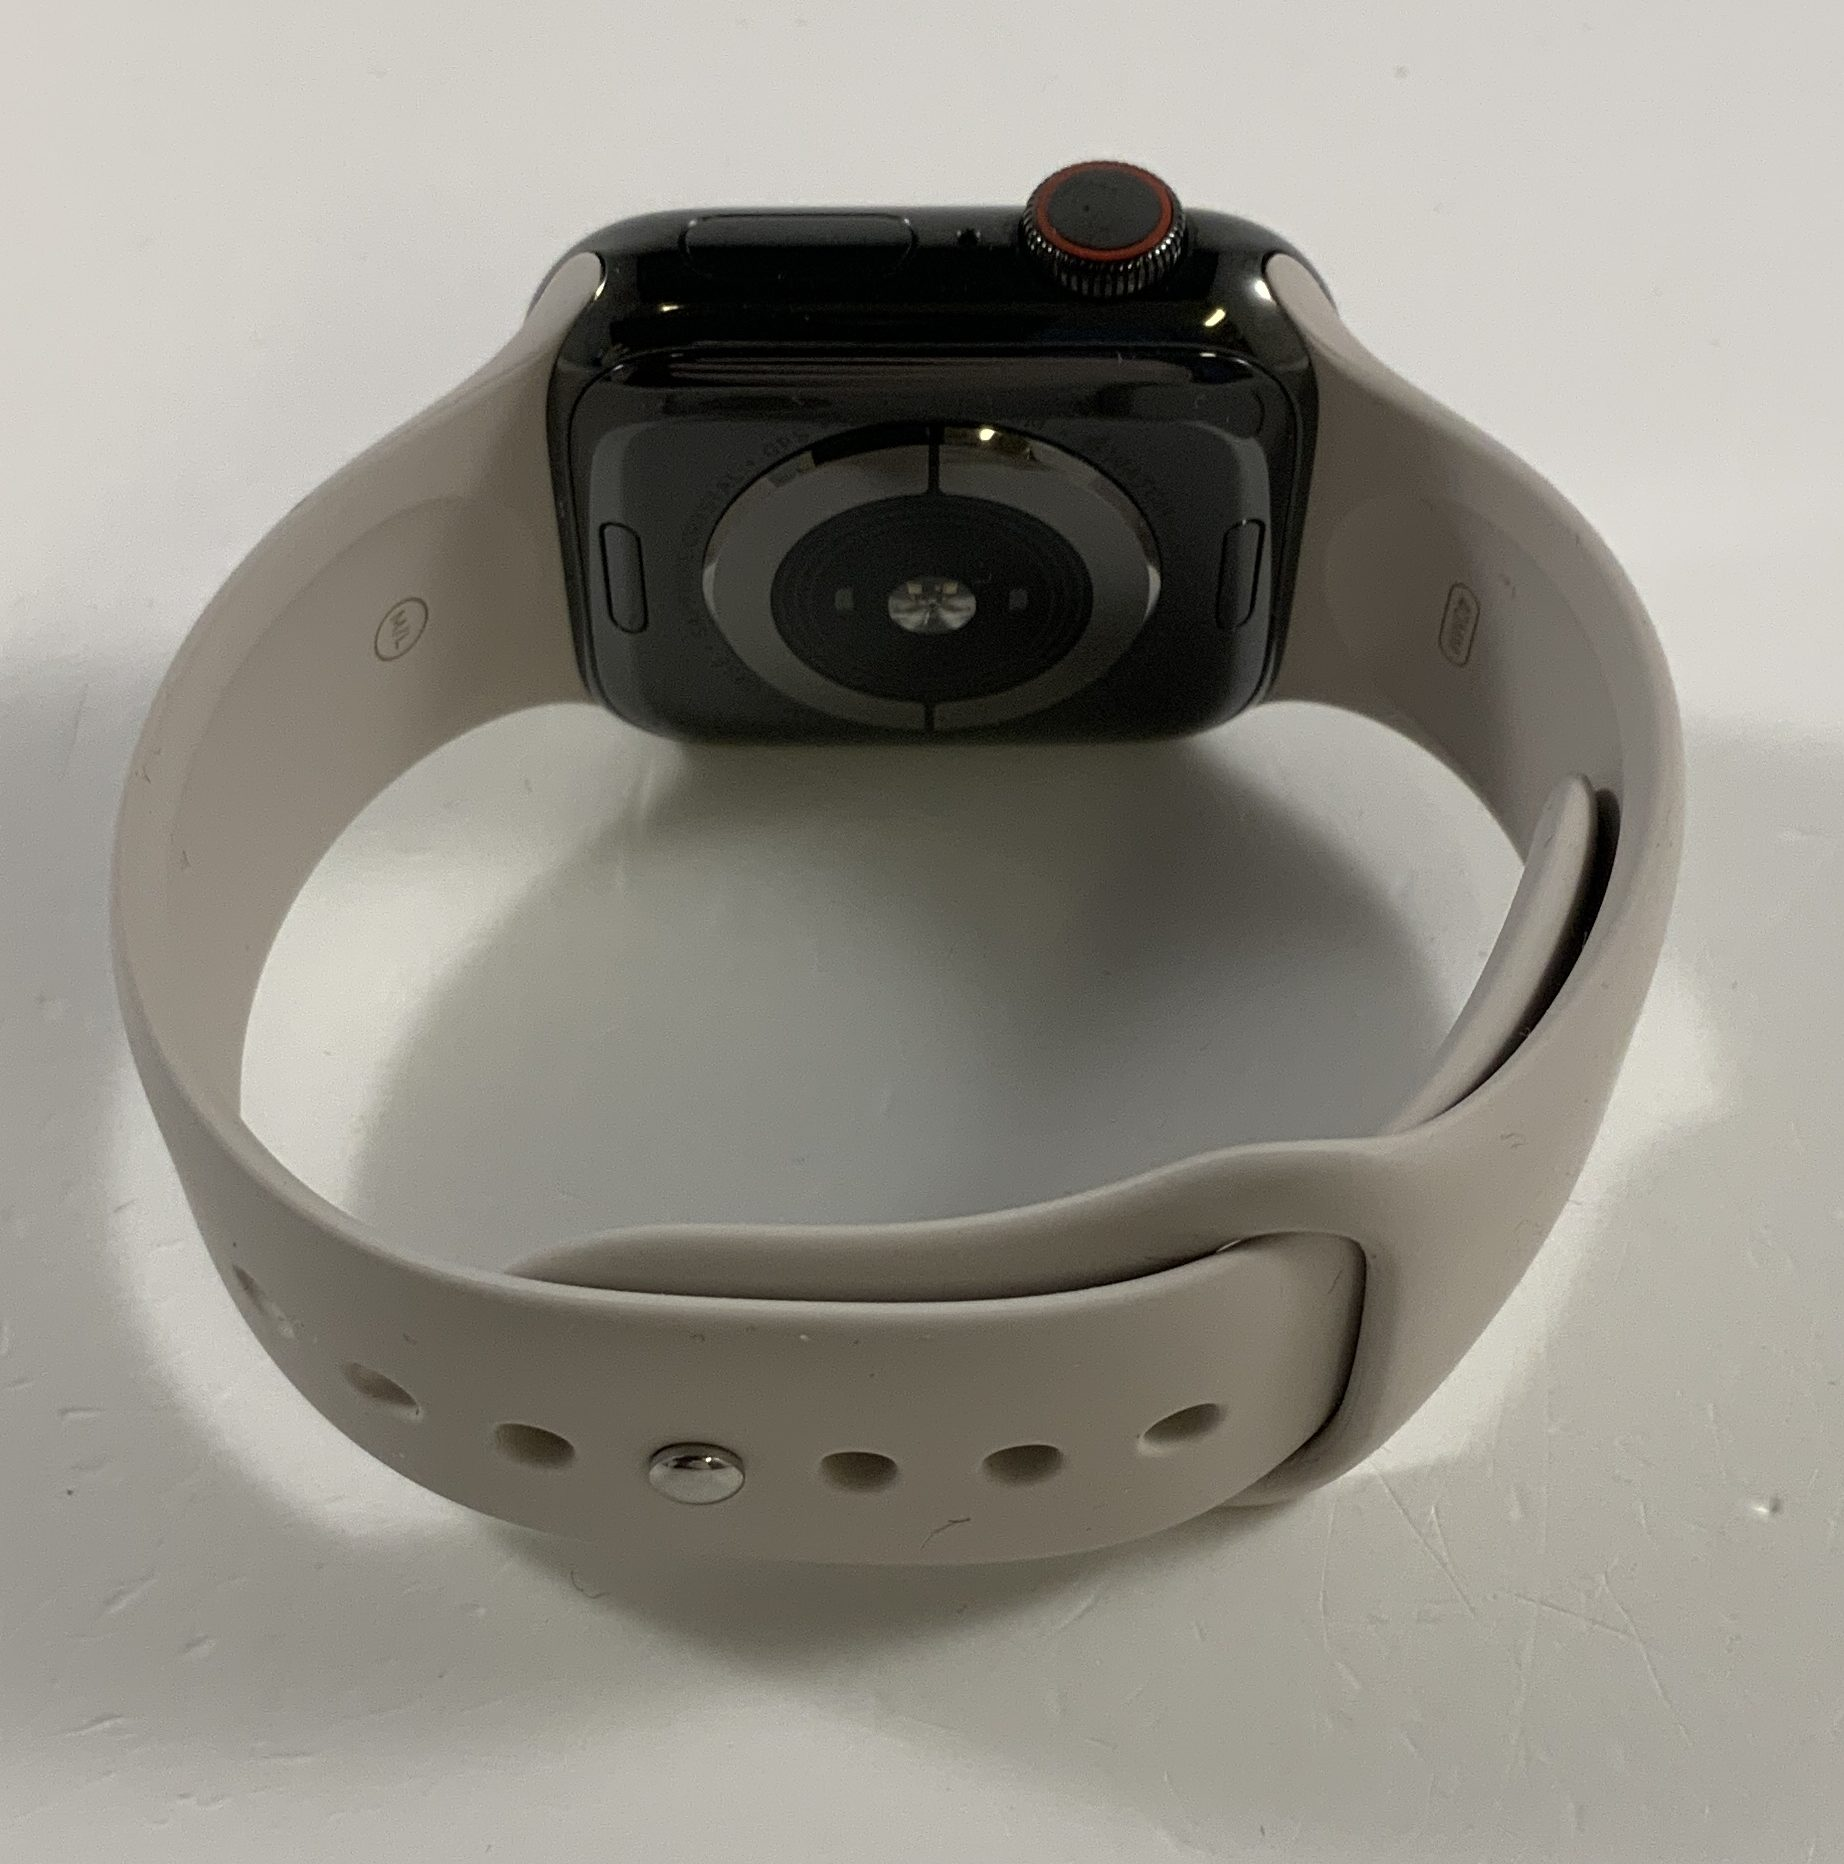 Watch Series 5 Steel Cellular (40mm), Space Black, immagine 3